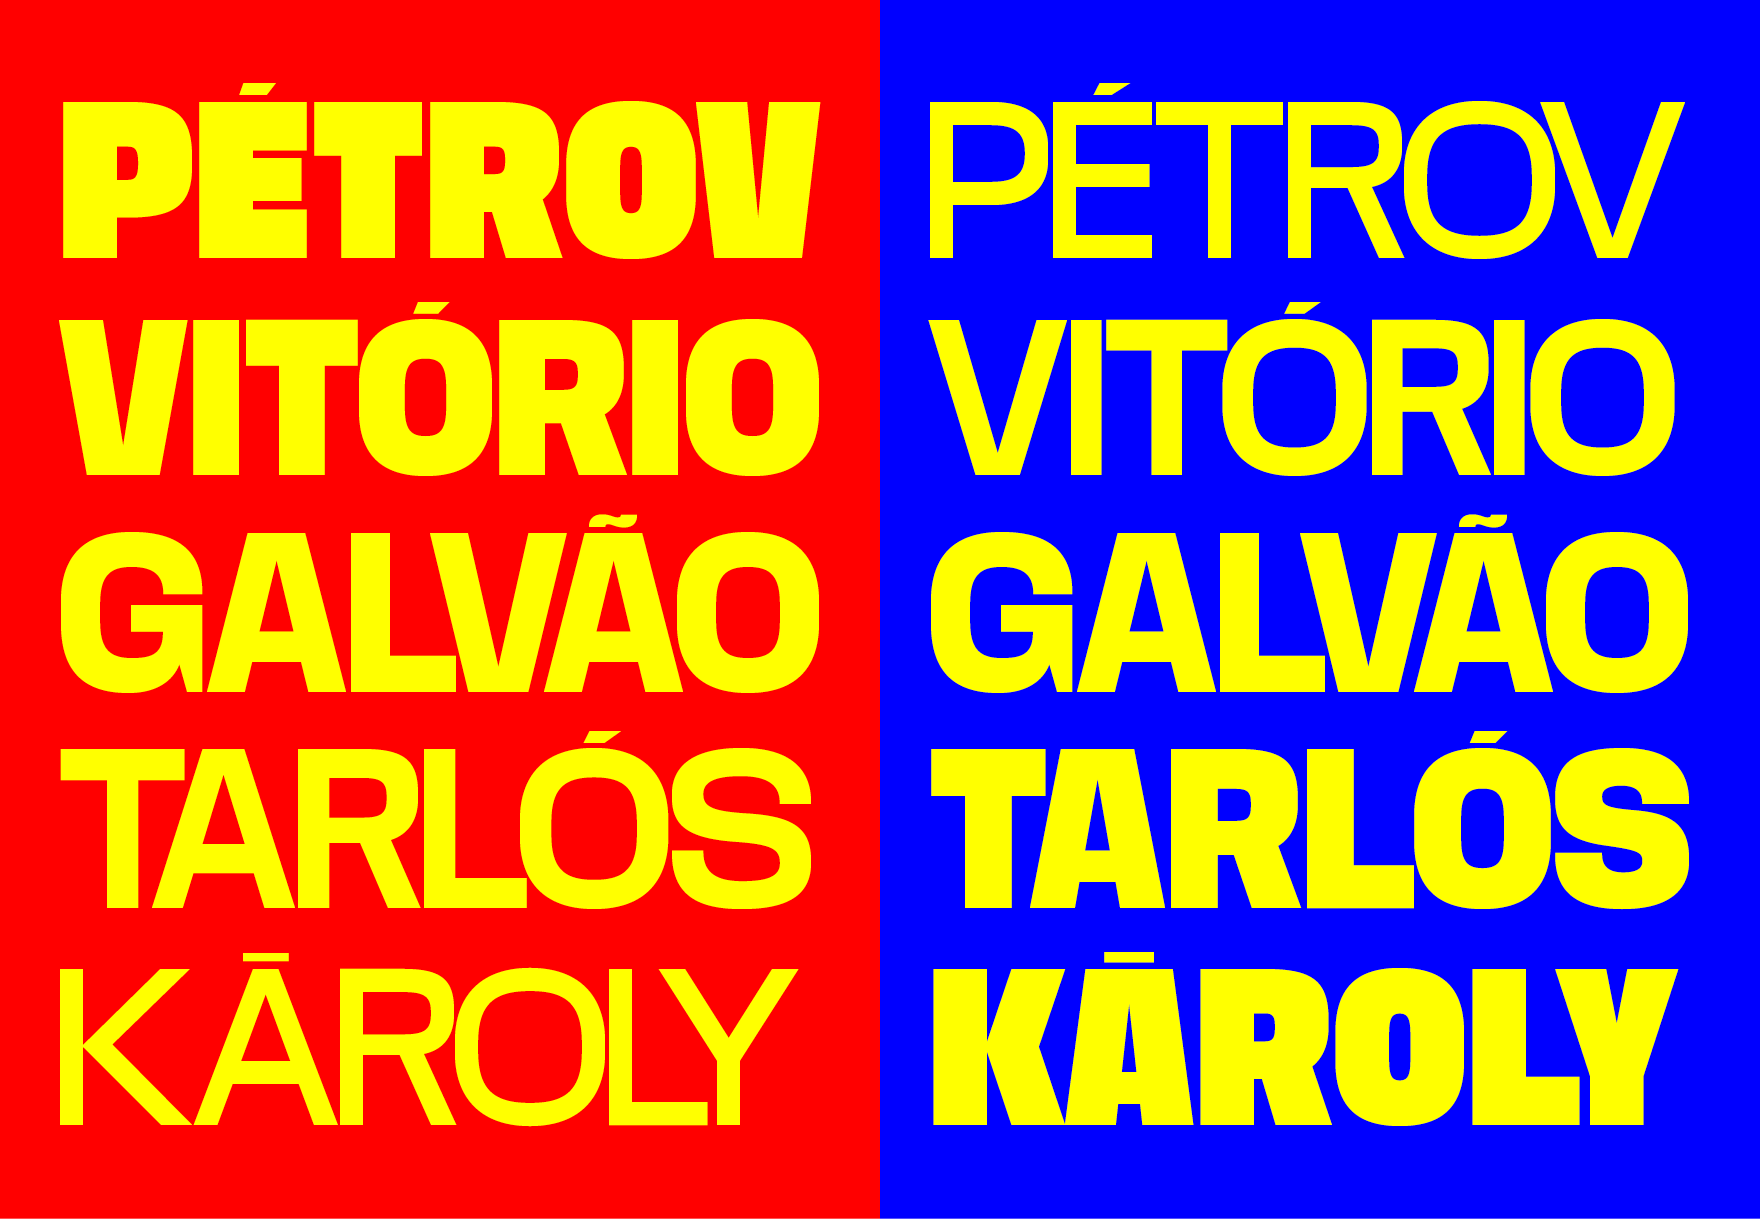 Production Type - New fonts from Production Type: Media Sans